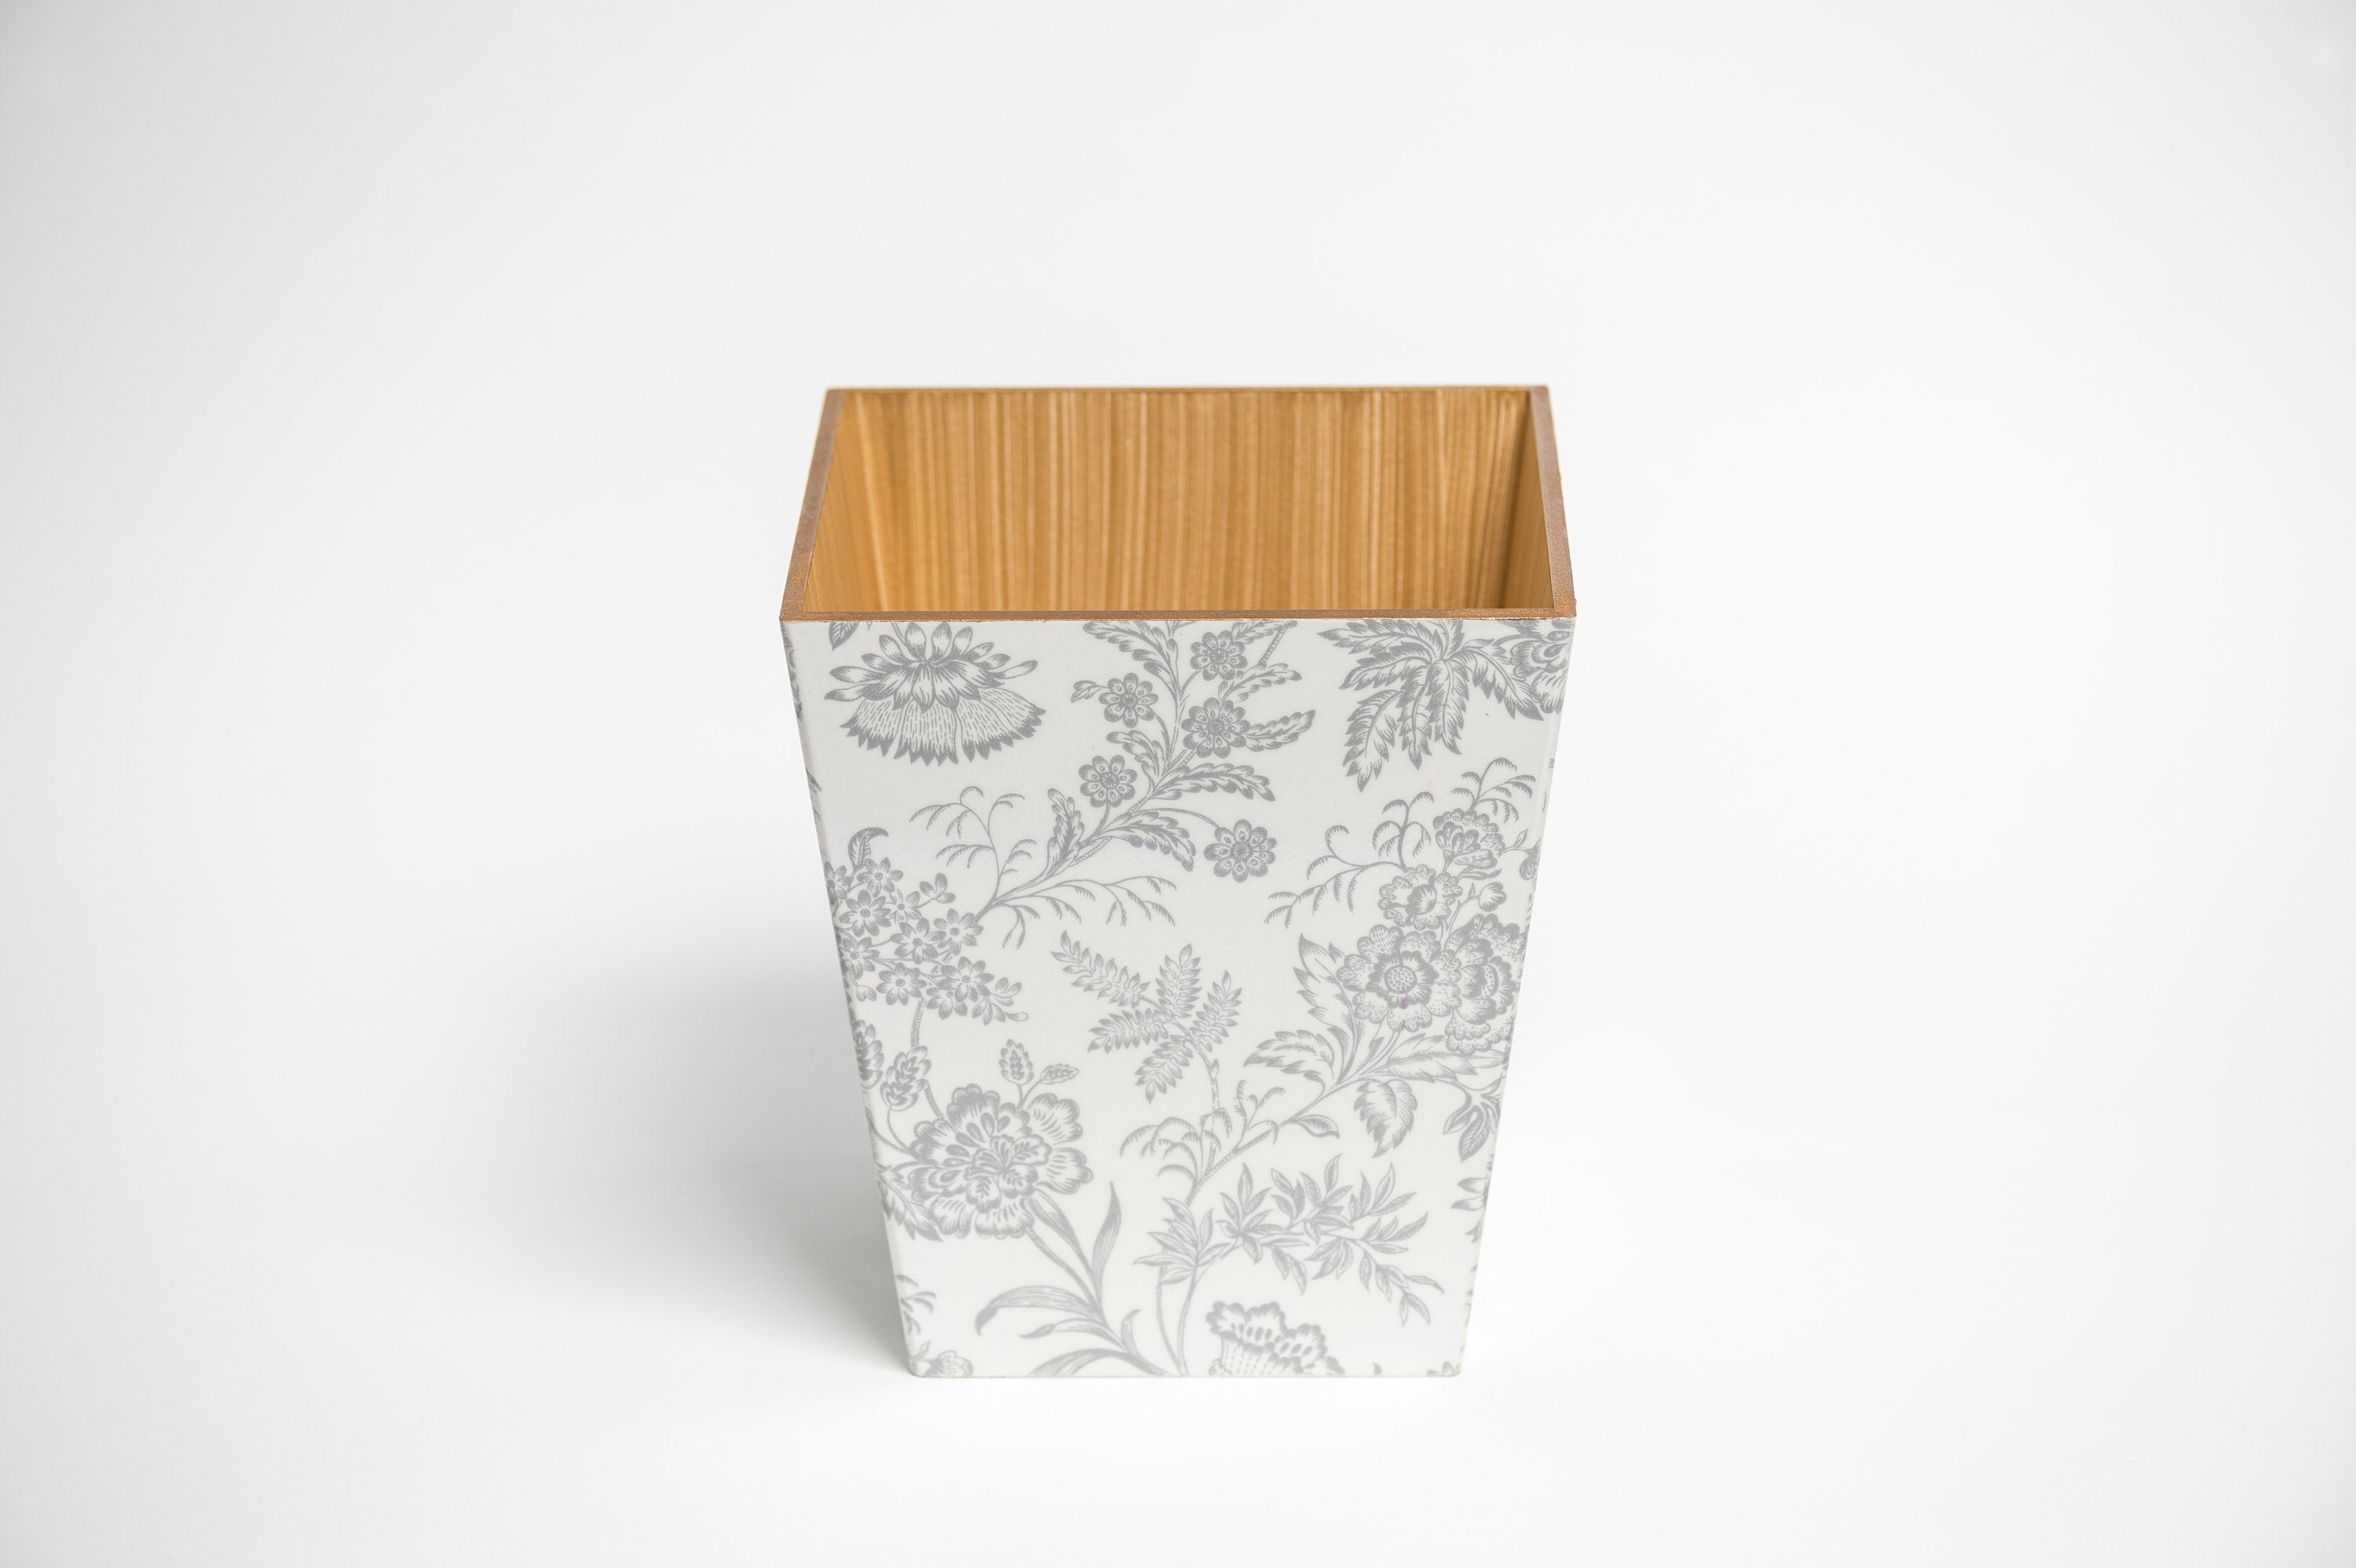 Silver Foliage Waste Paper Bin & Tissue Box Cover Set